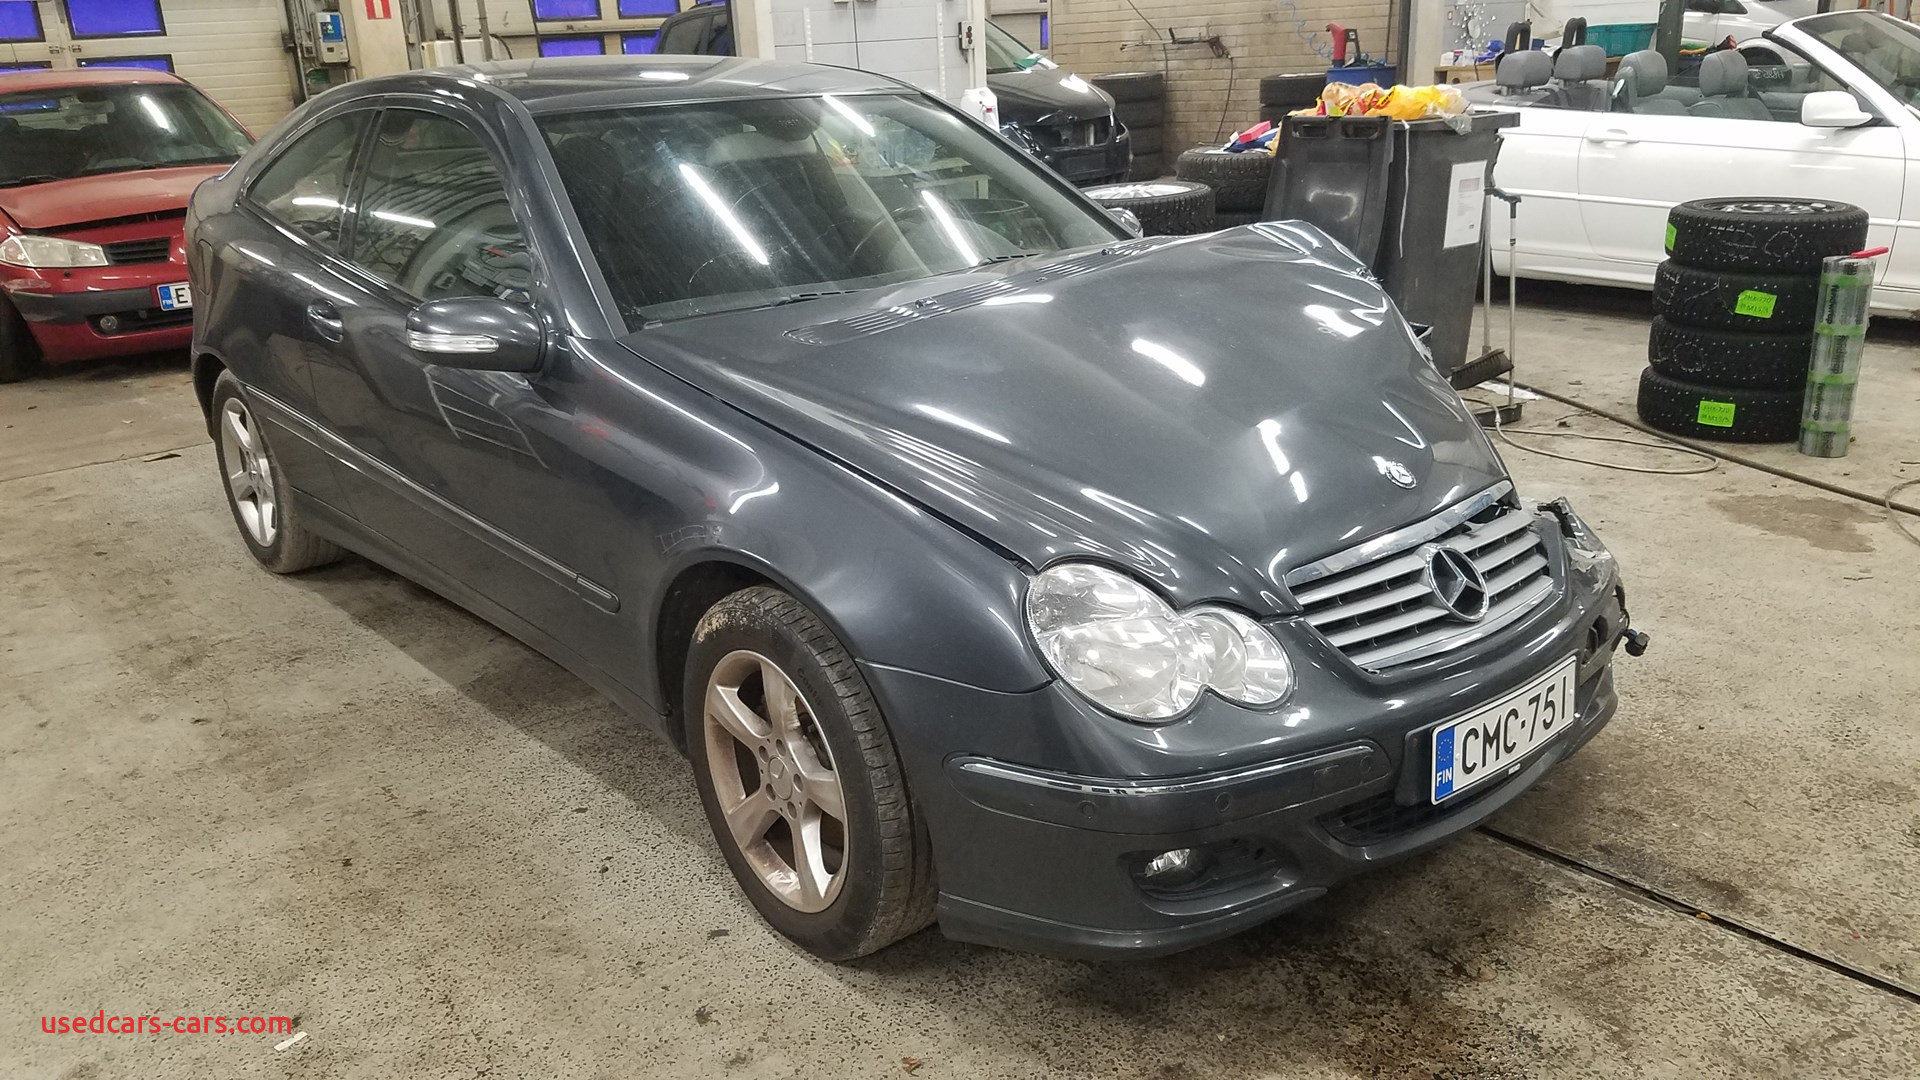 Used Cars for Sale Perth Inspirational 2007 Mercedes Benz C for Sale at Espoo On Tuesday November